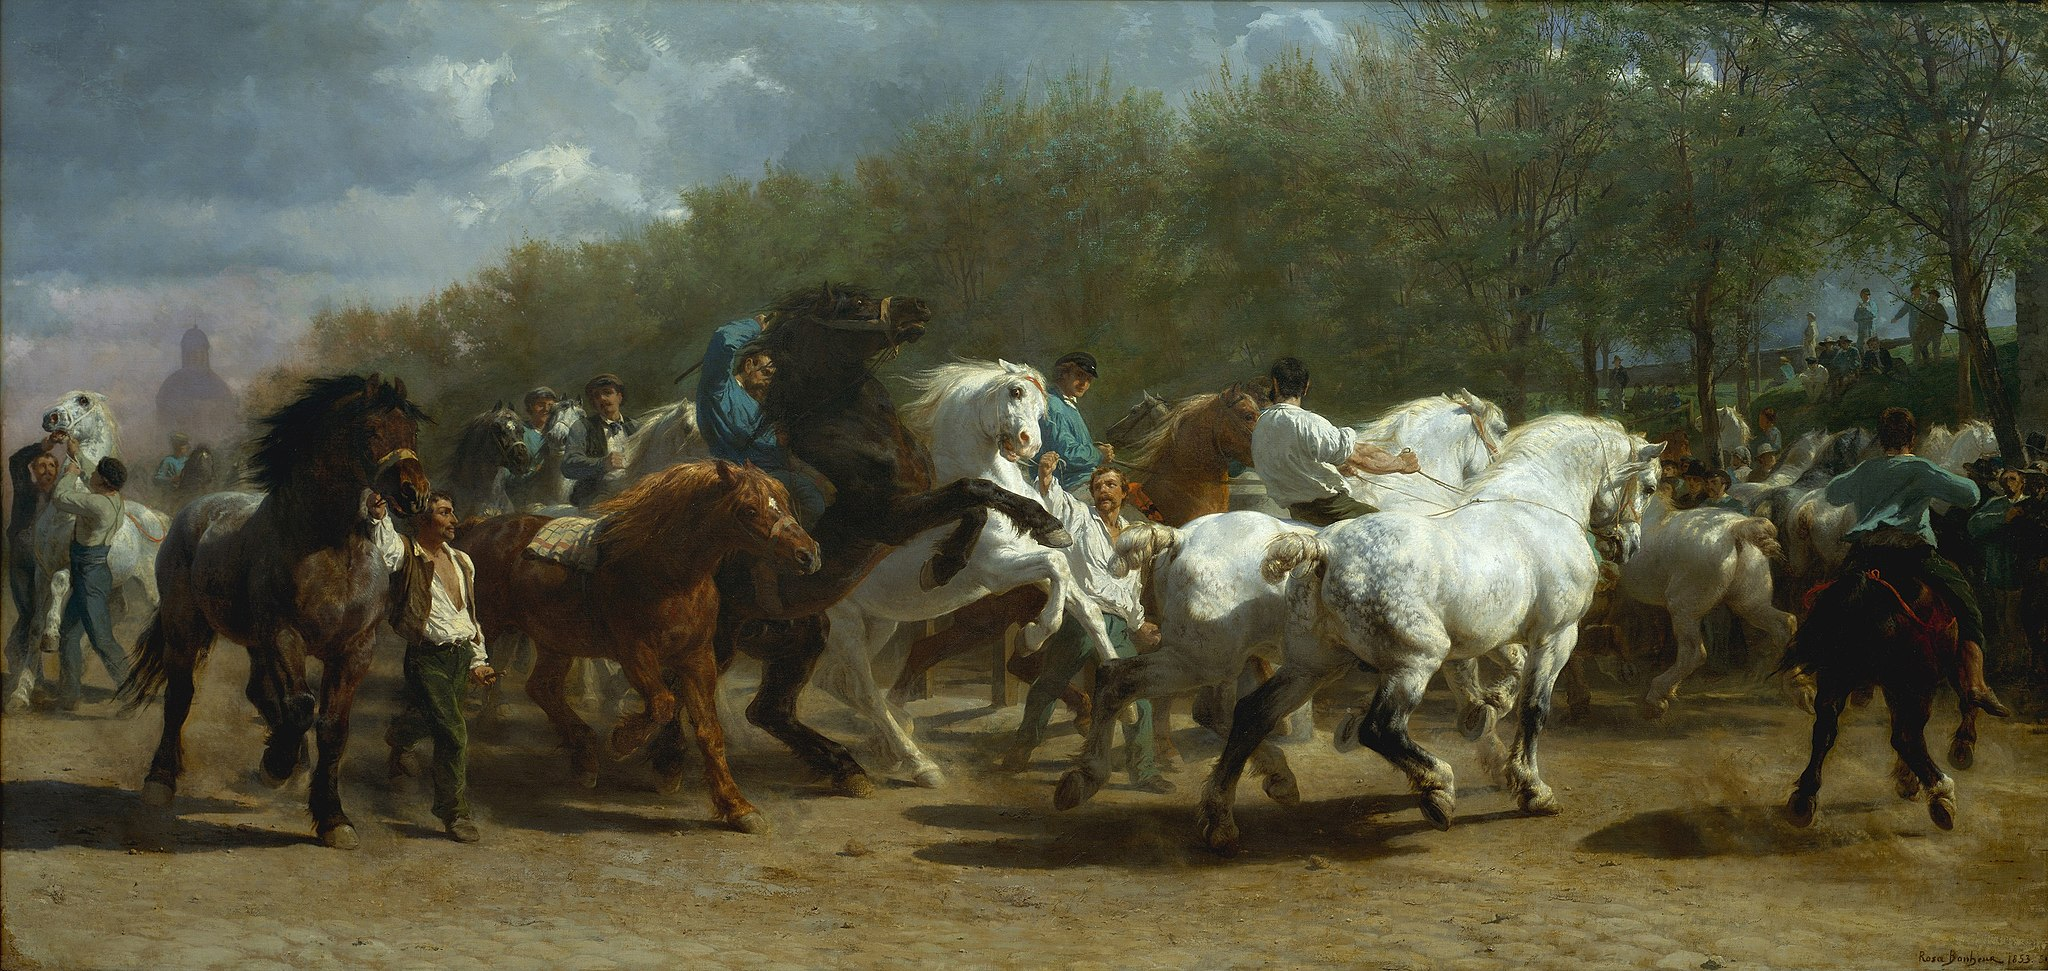 Picture of Rosa Bonheur's The Horse Fair